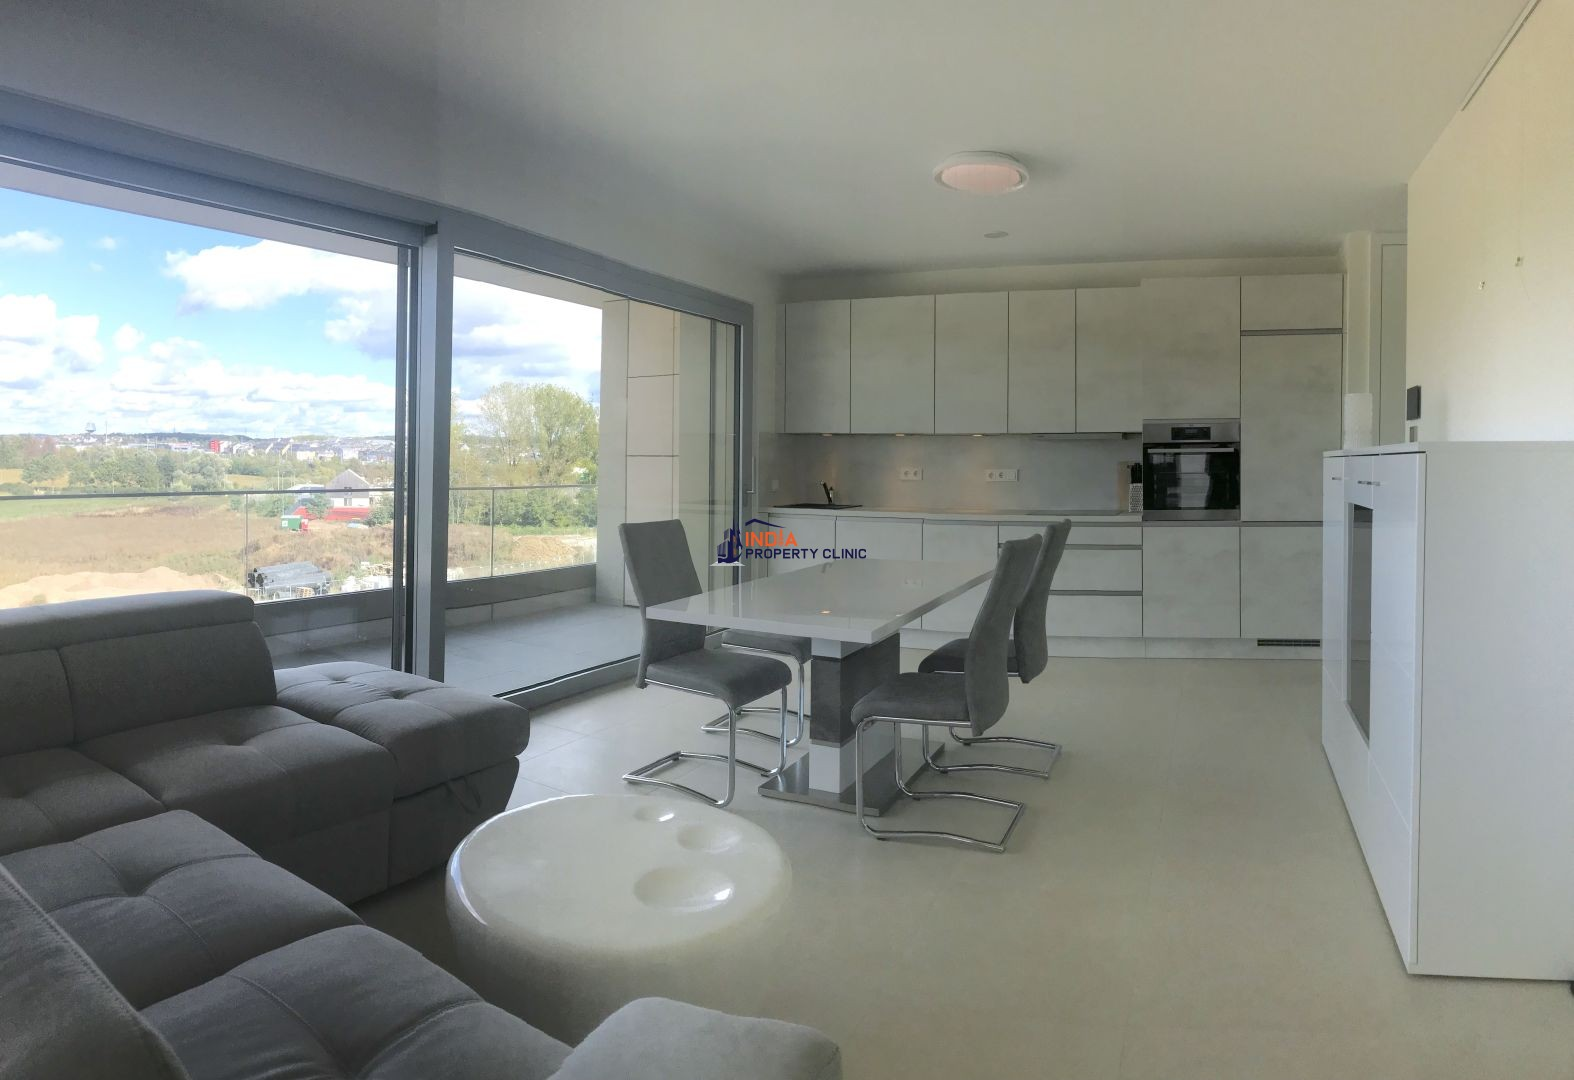 Apartment For Rent in Gasperich